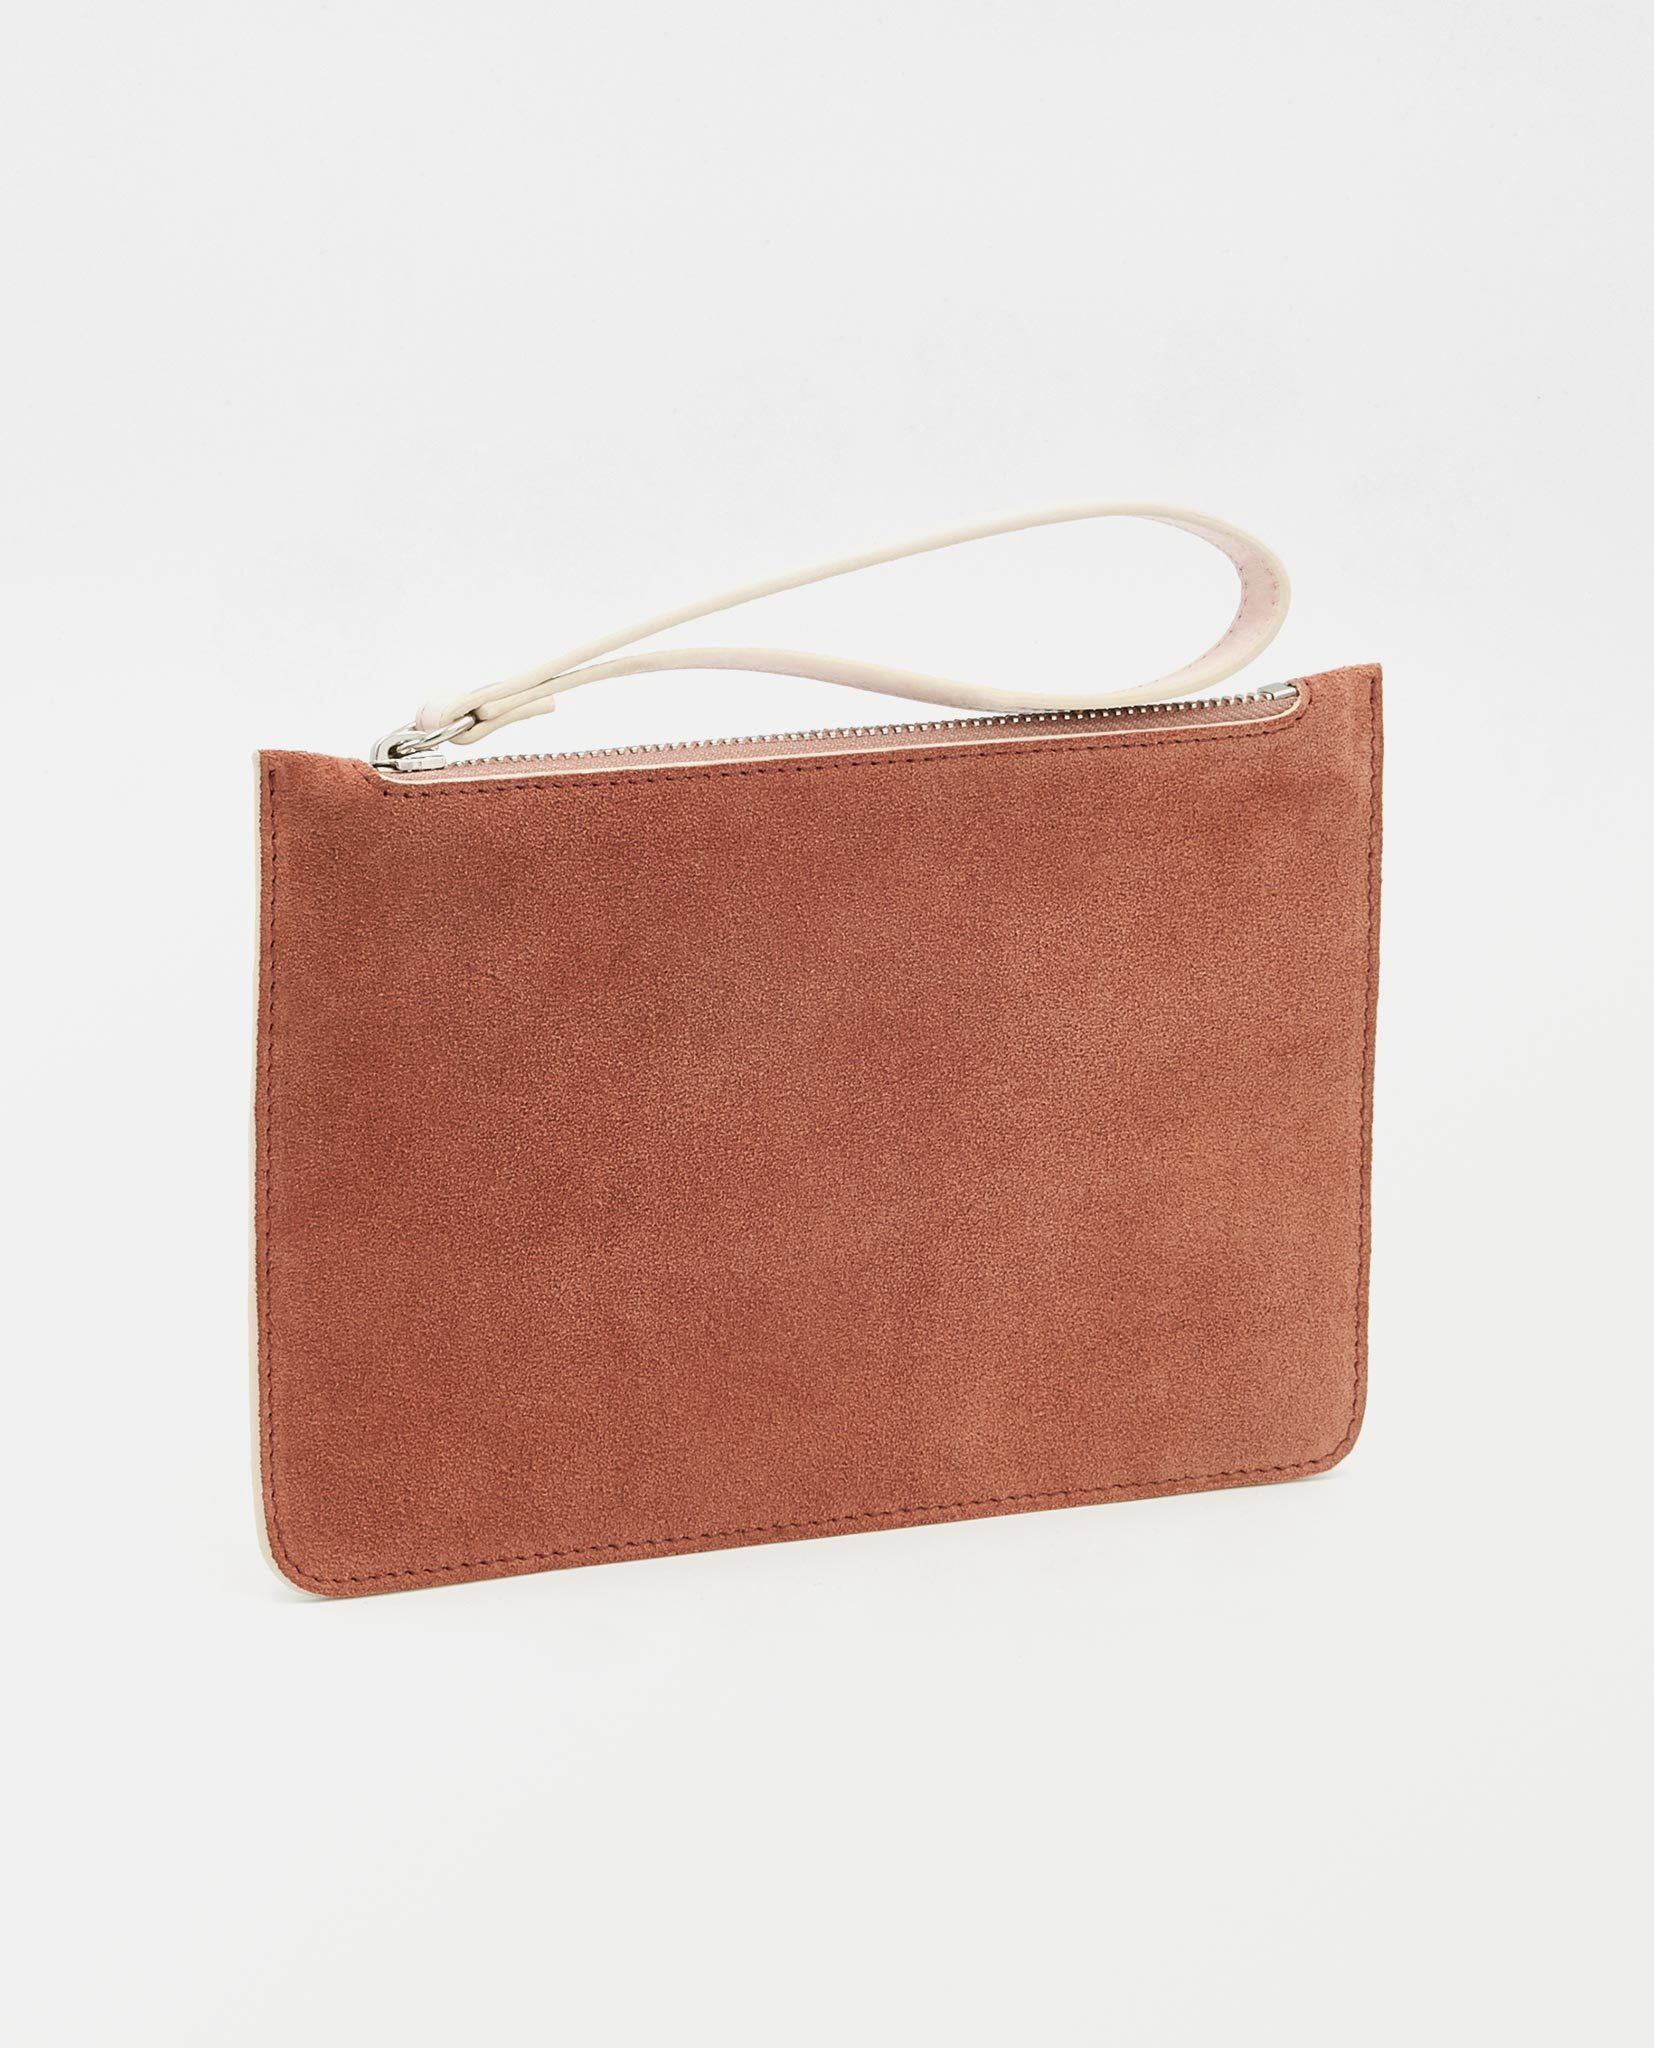 Soofre Small Suede Leather Pouch Rose-Blush